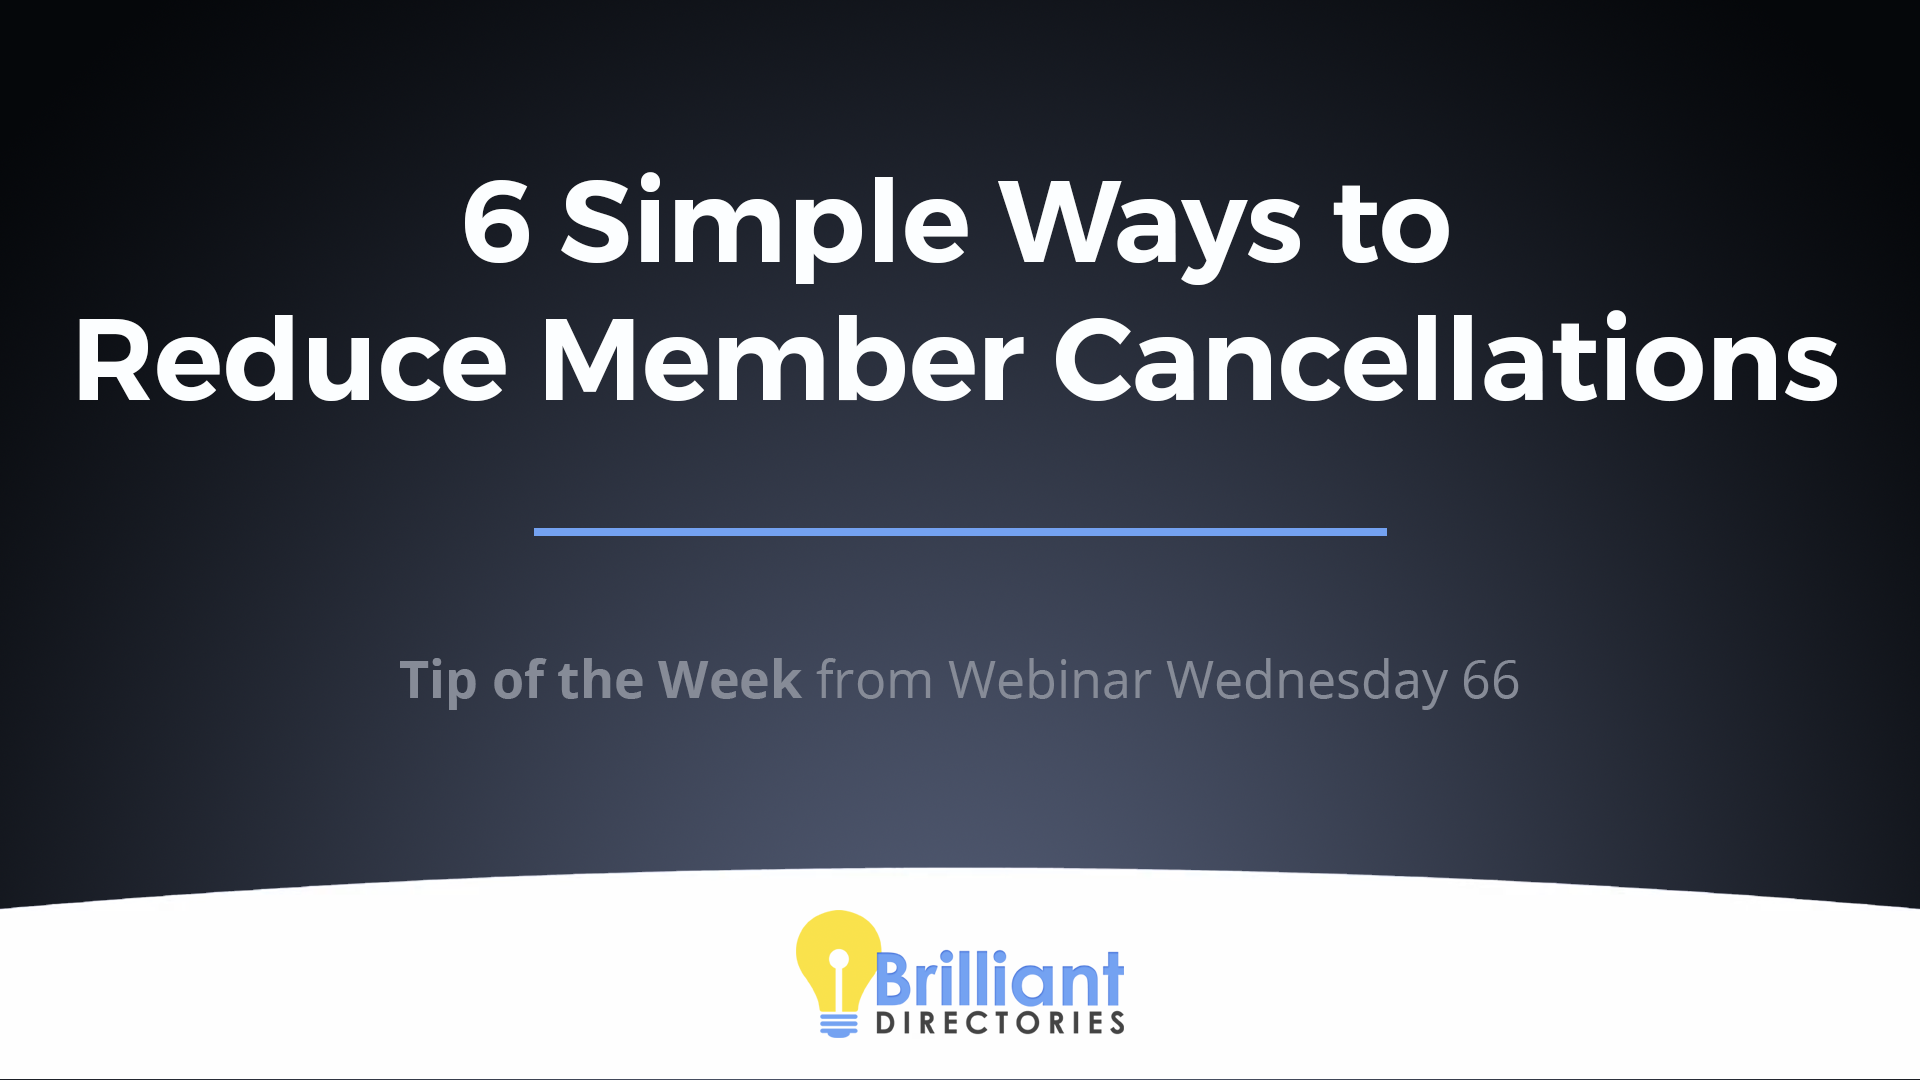 https://www.brilliantdirectories.com/blog/6-easy-ways-to-reduce-membership-cancellations-churn-rate